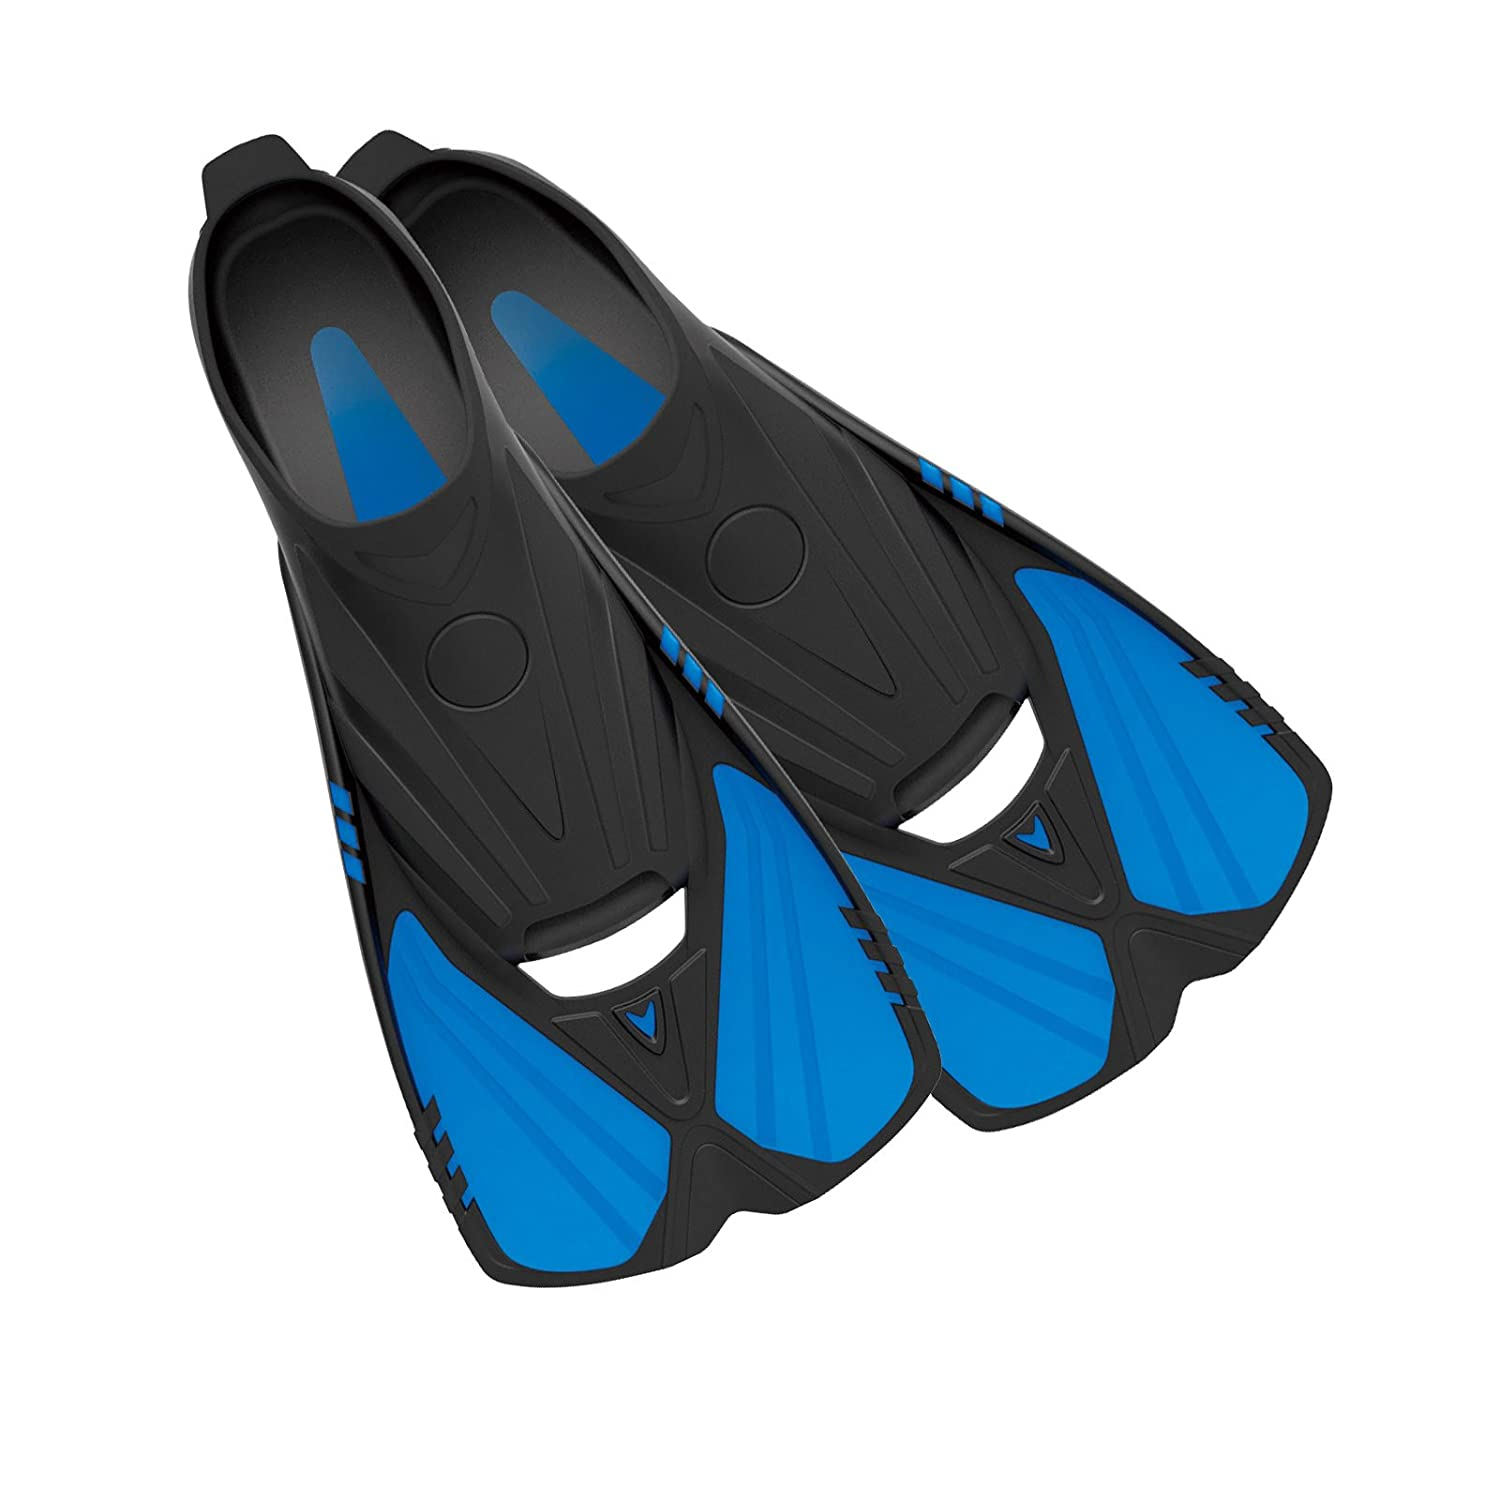 Swimming Deep Blue Gear Aqualine Short Fins for Snorkeling and Diving